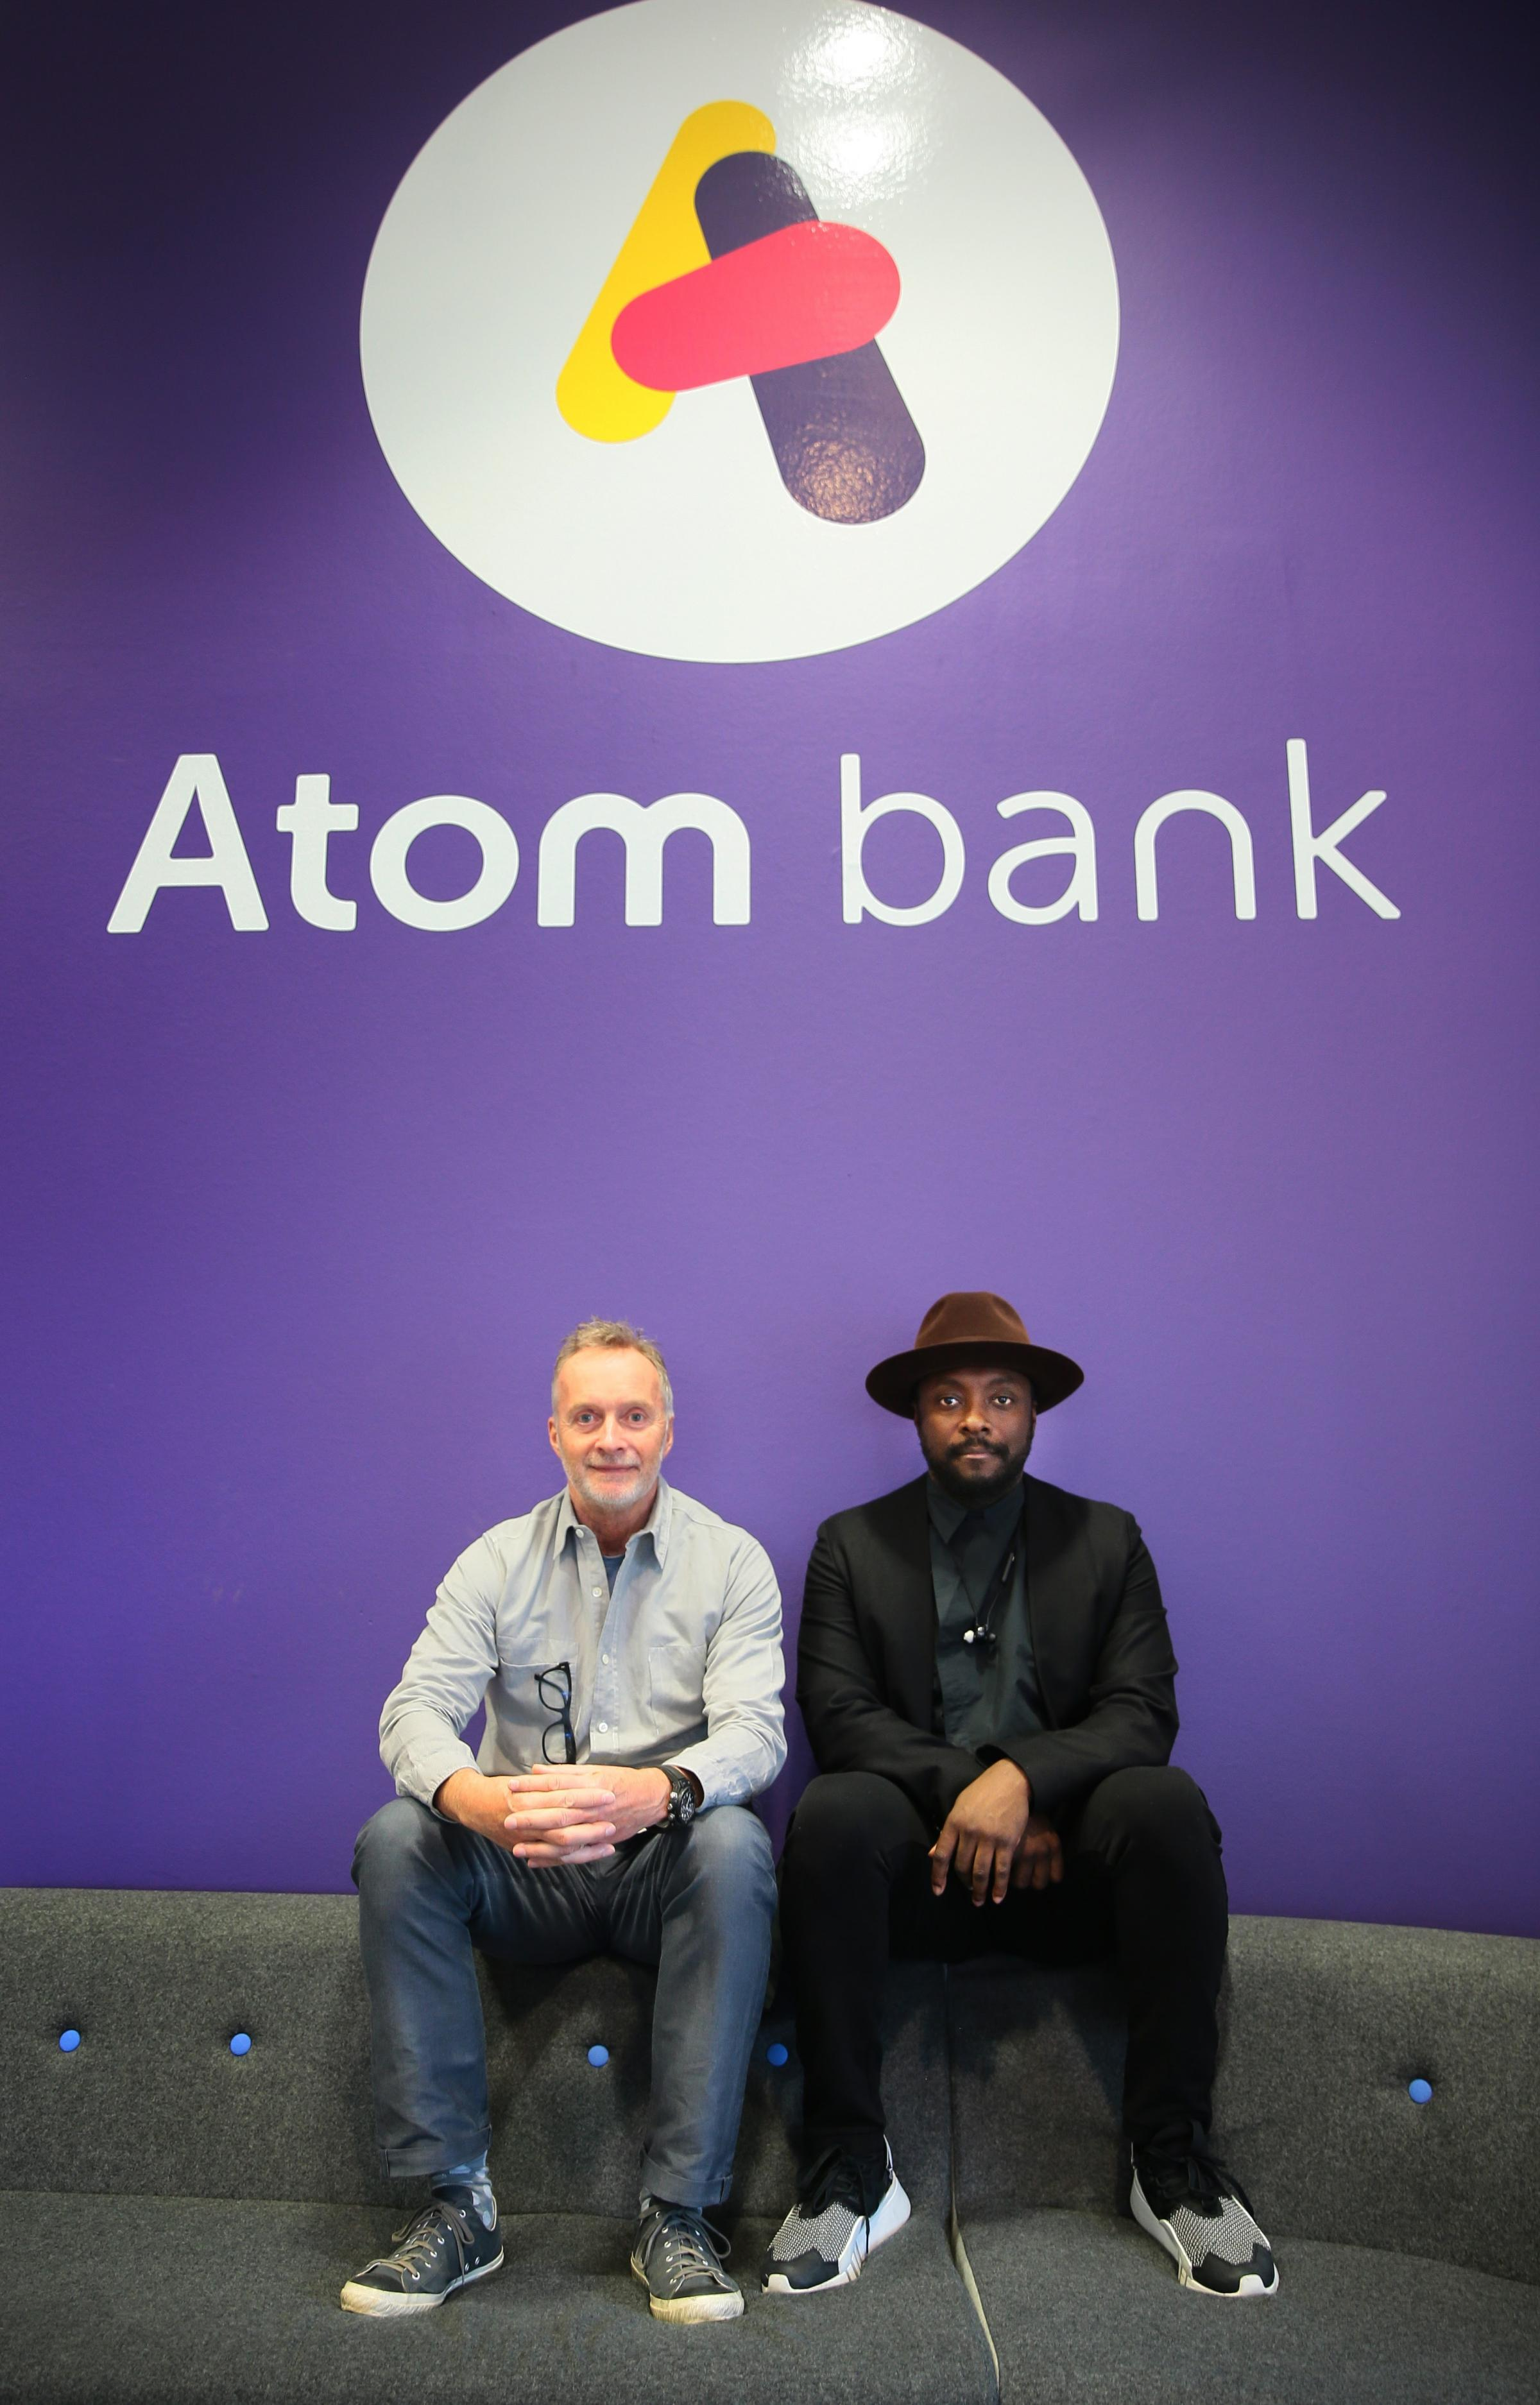 CHANGE: Anthony Thomson, left, with popstar Will.i.am, is stepping down as chairman at Atom bank